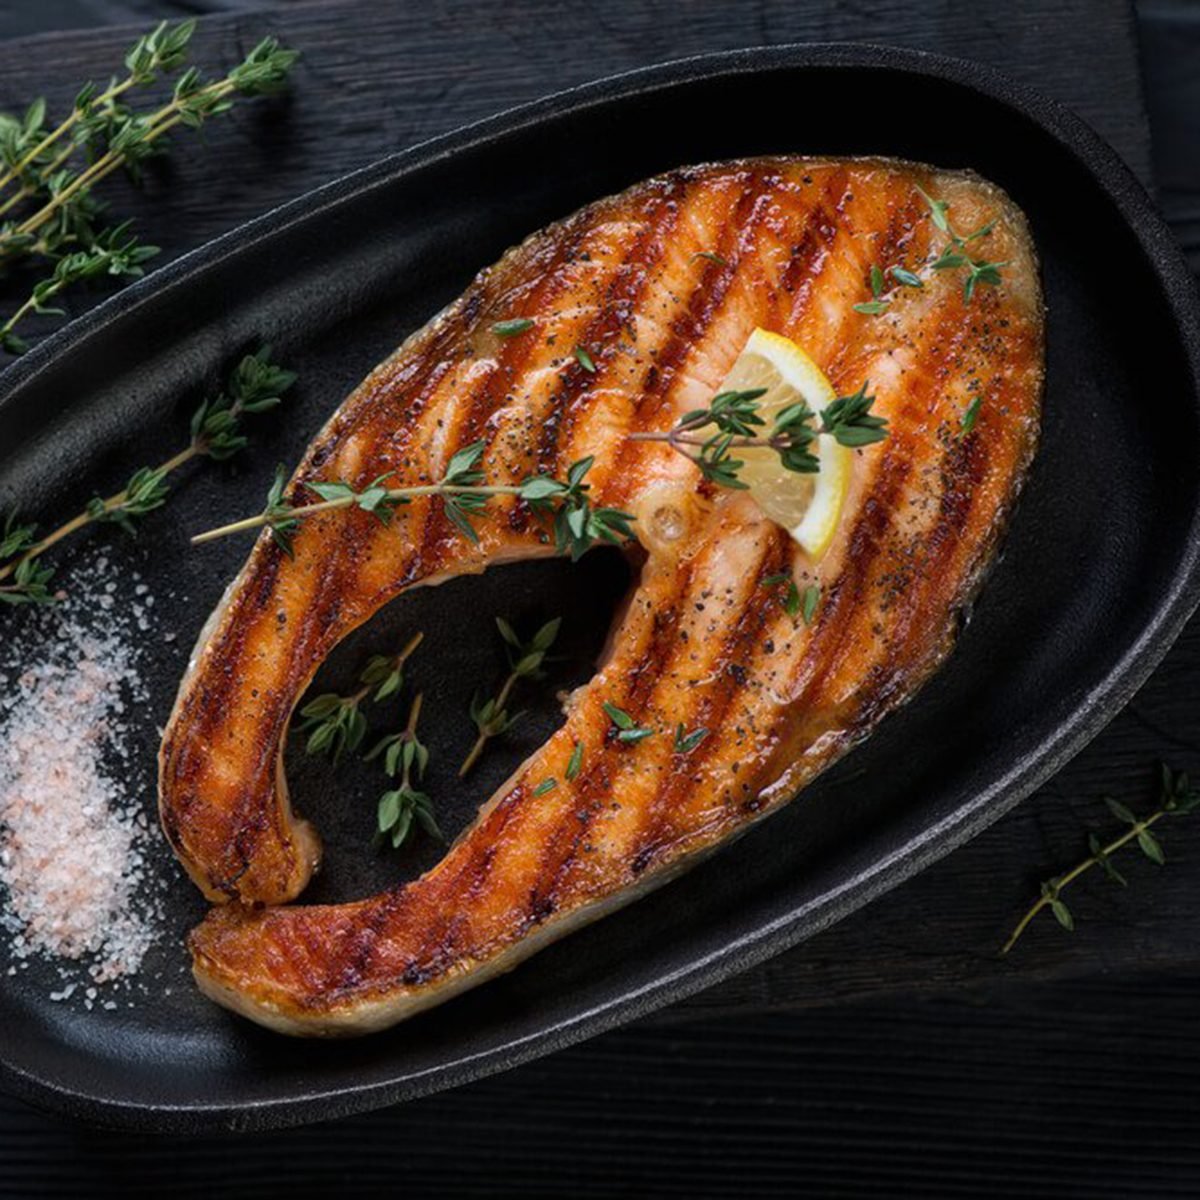 Grill salmon in a pan